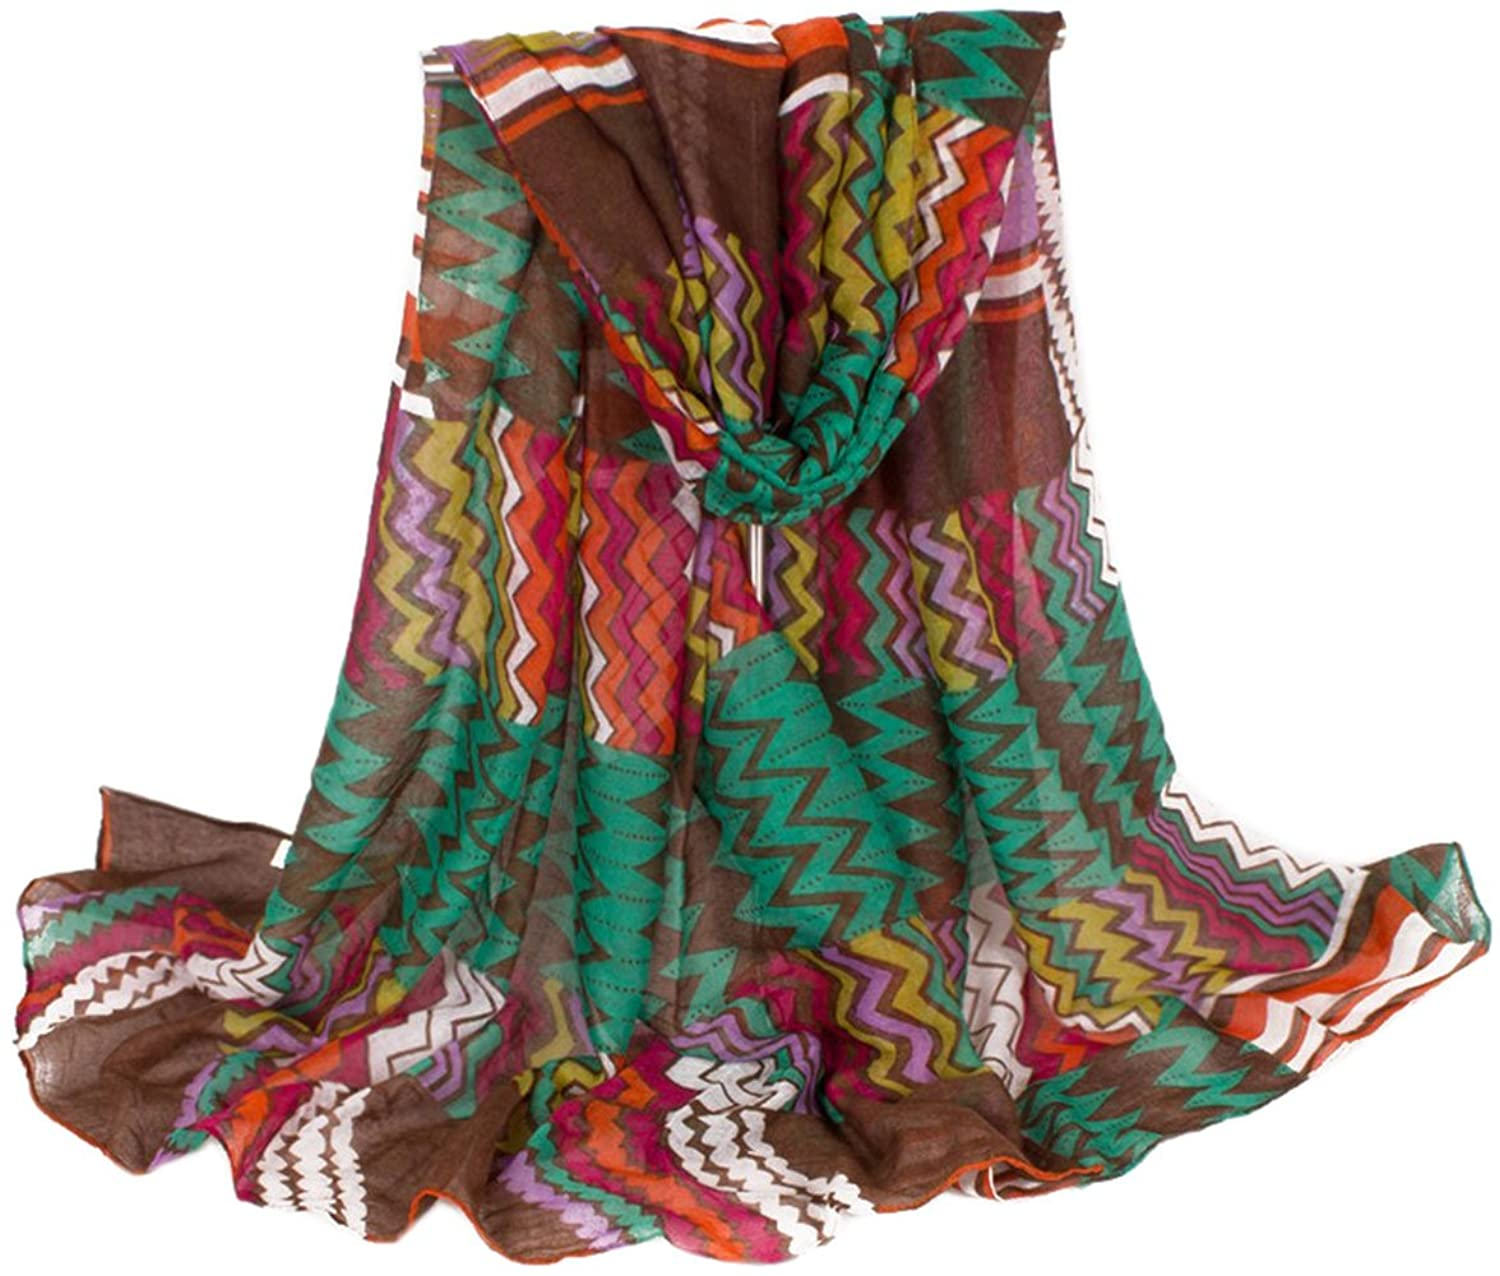 Bettyhome Fashion Girls Multicolor Bohemian Pattern Voile Women's Large Beach Scarf Shawl Lightweight